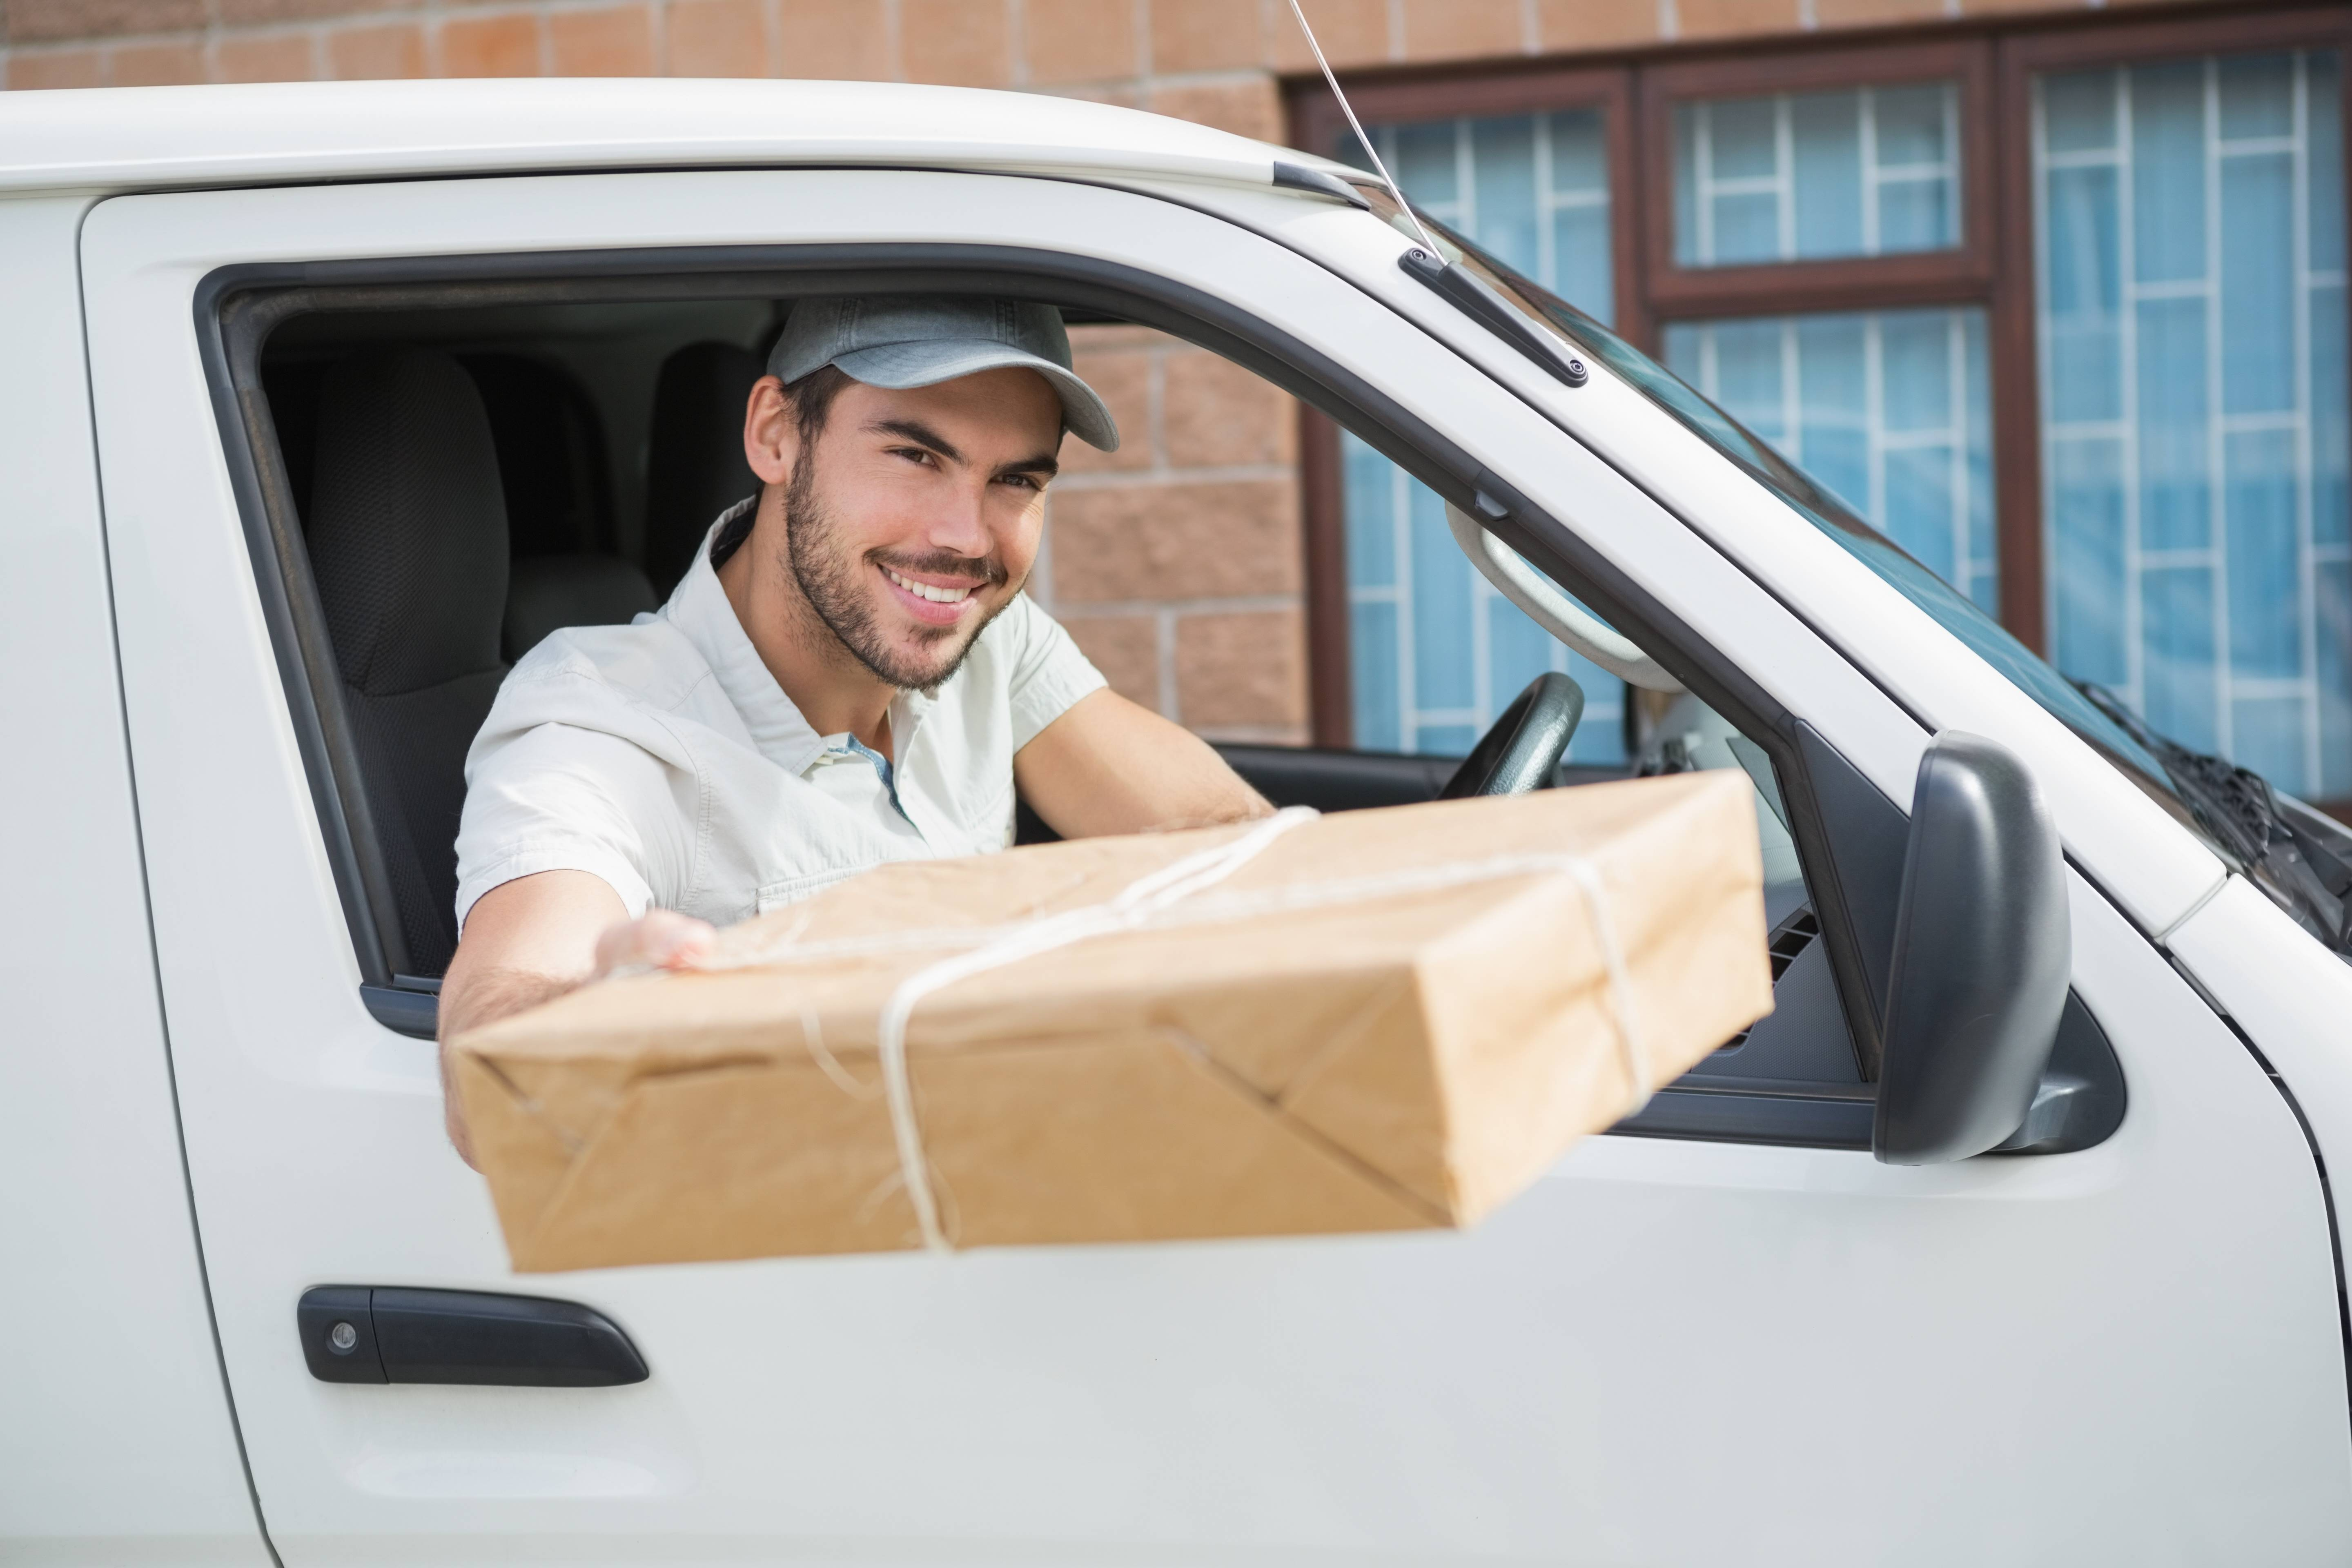 Delivery Franchises - Courier Business Opportunities